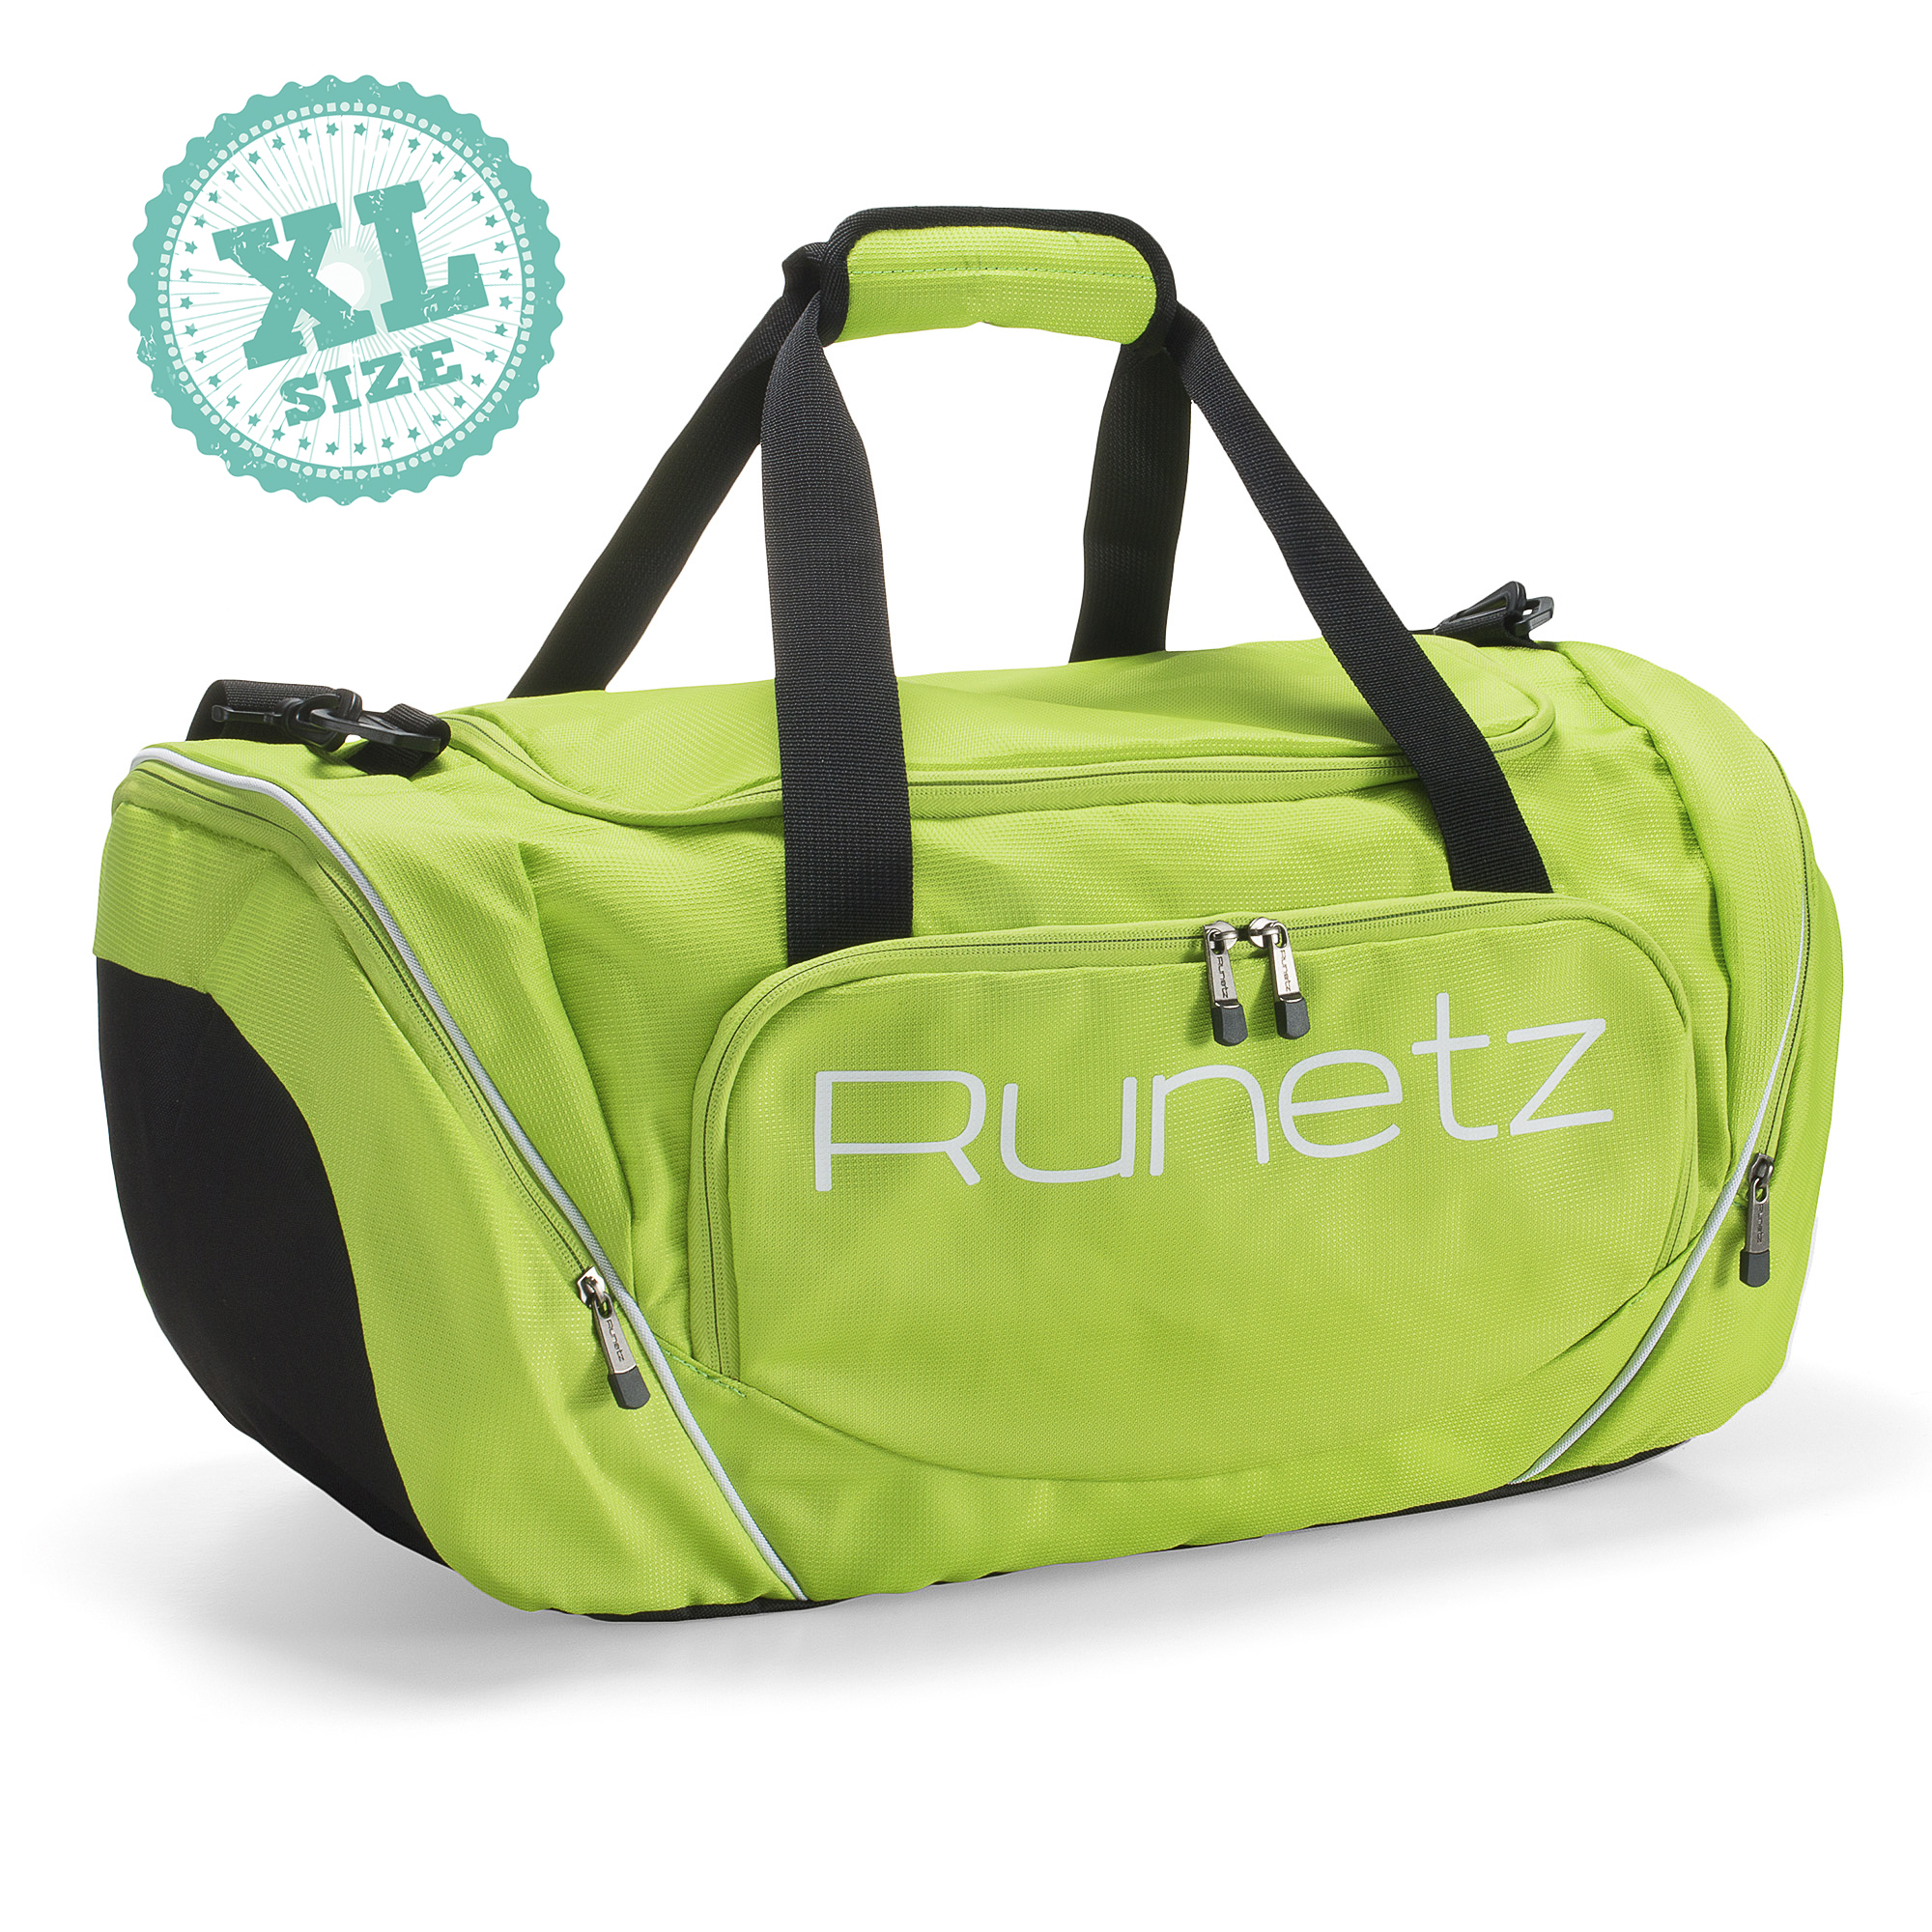 Gym Bag Jalandhar: Gym Bag Sport Shoulder Bag For Men & Women Duffel